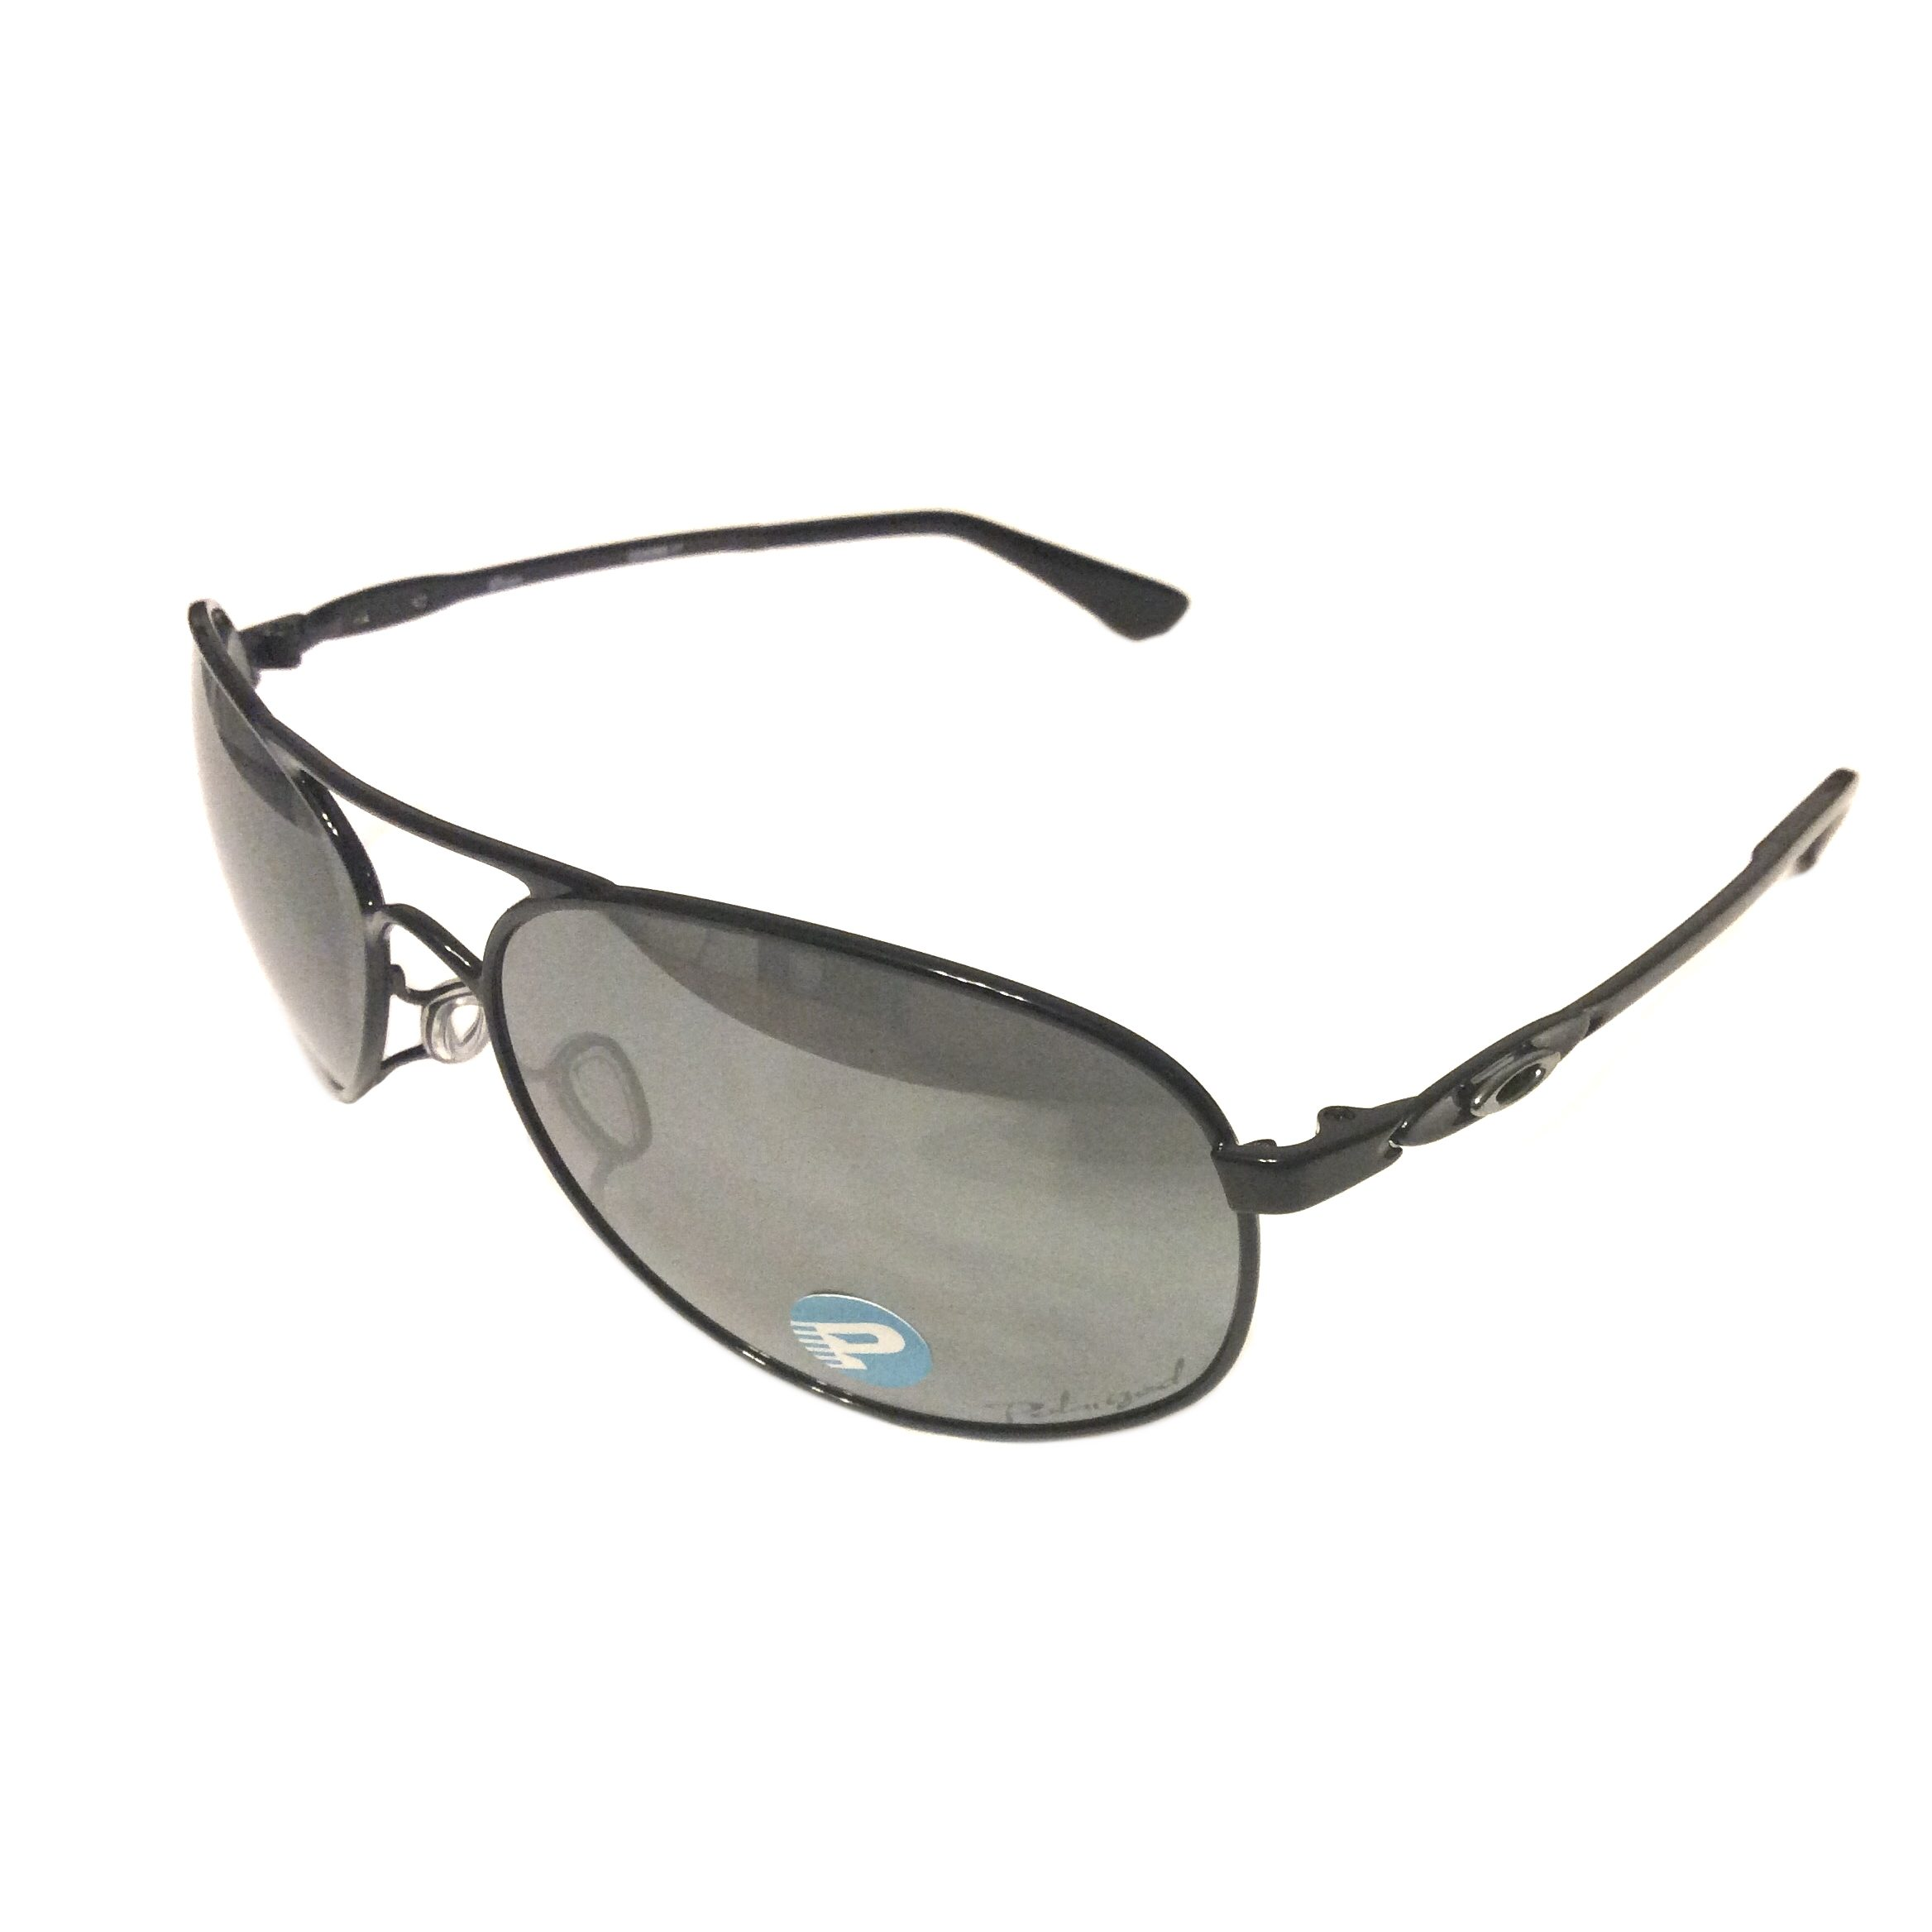 6d12f27382 Oakley Black Iridium Reviews « Heritage Malta